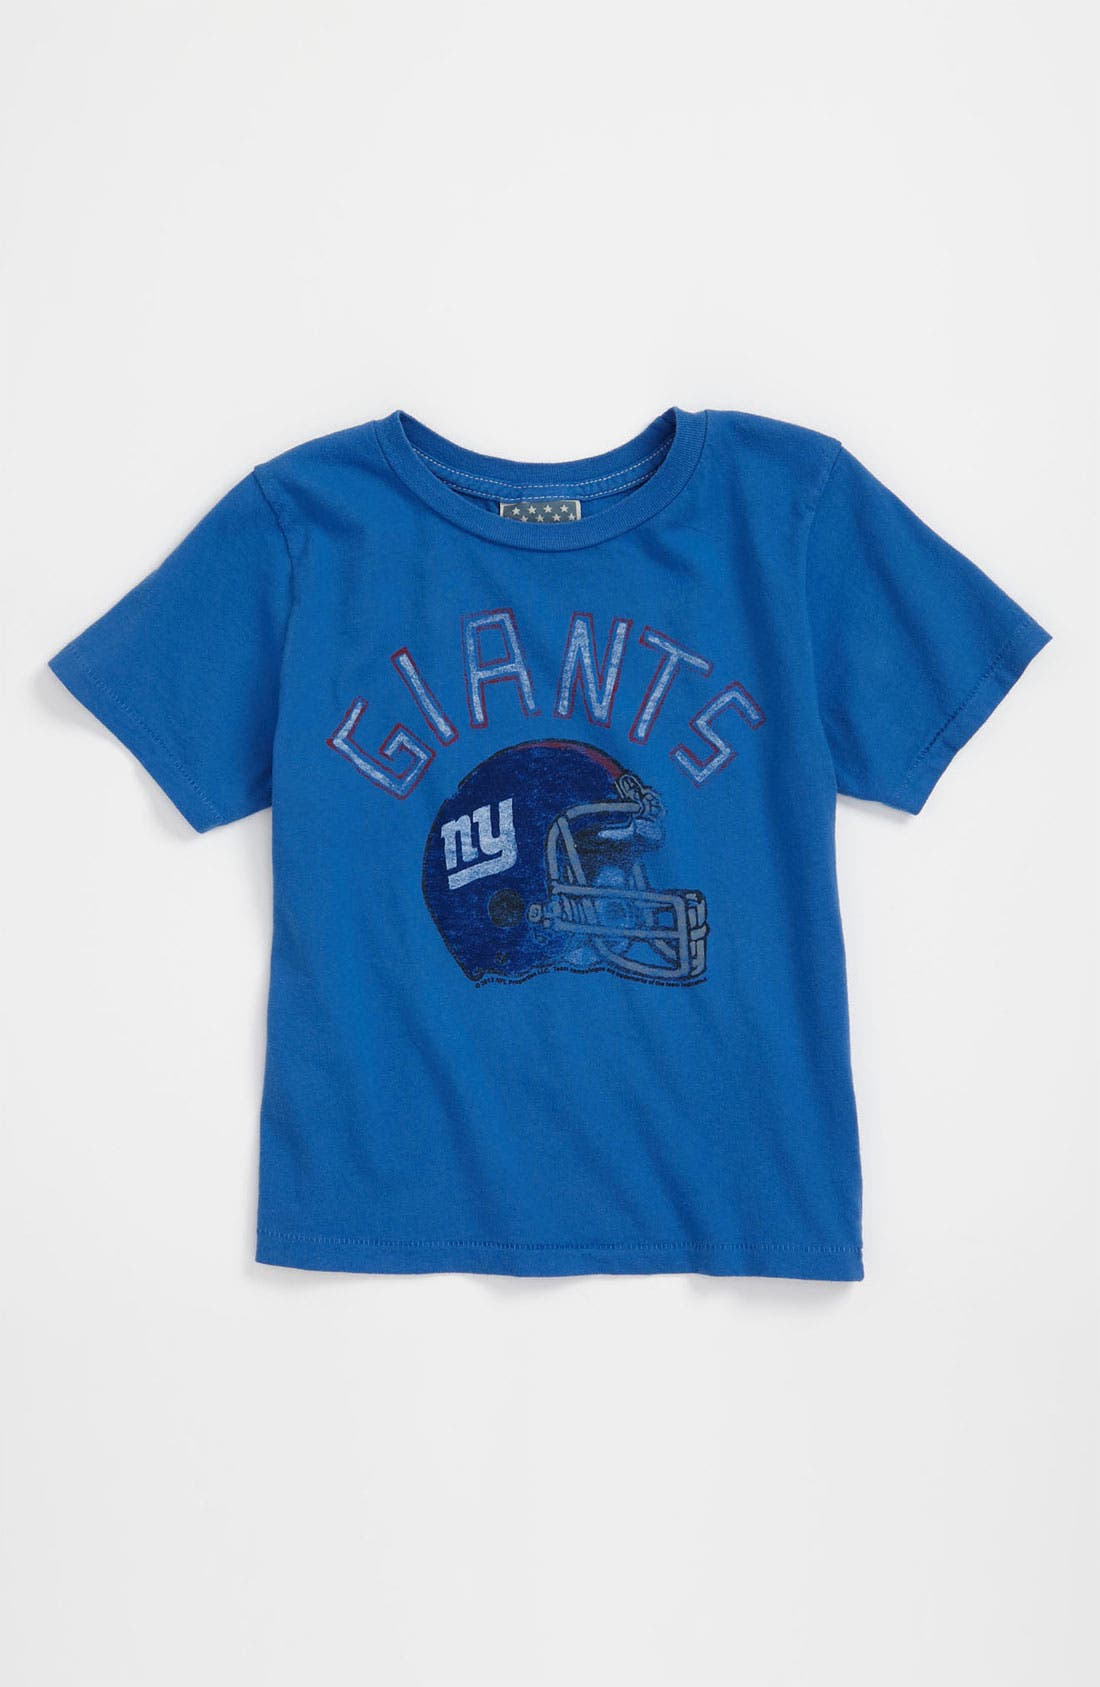 Alternate Image 1 Selected - Junk Food 'New York Giants' T-Shirt (Infant)